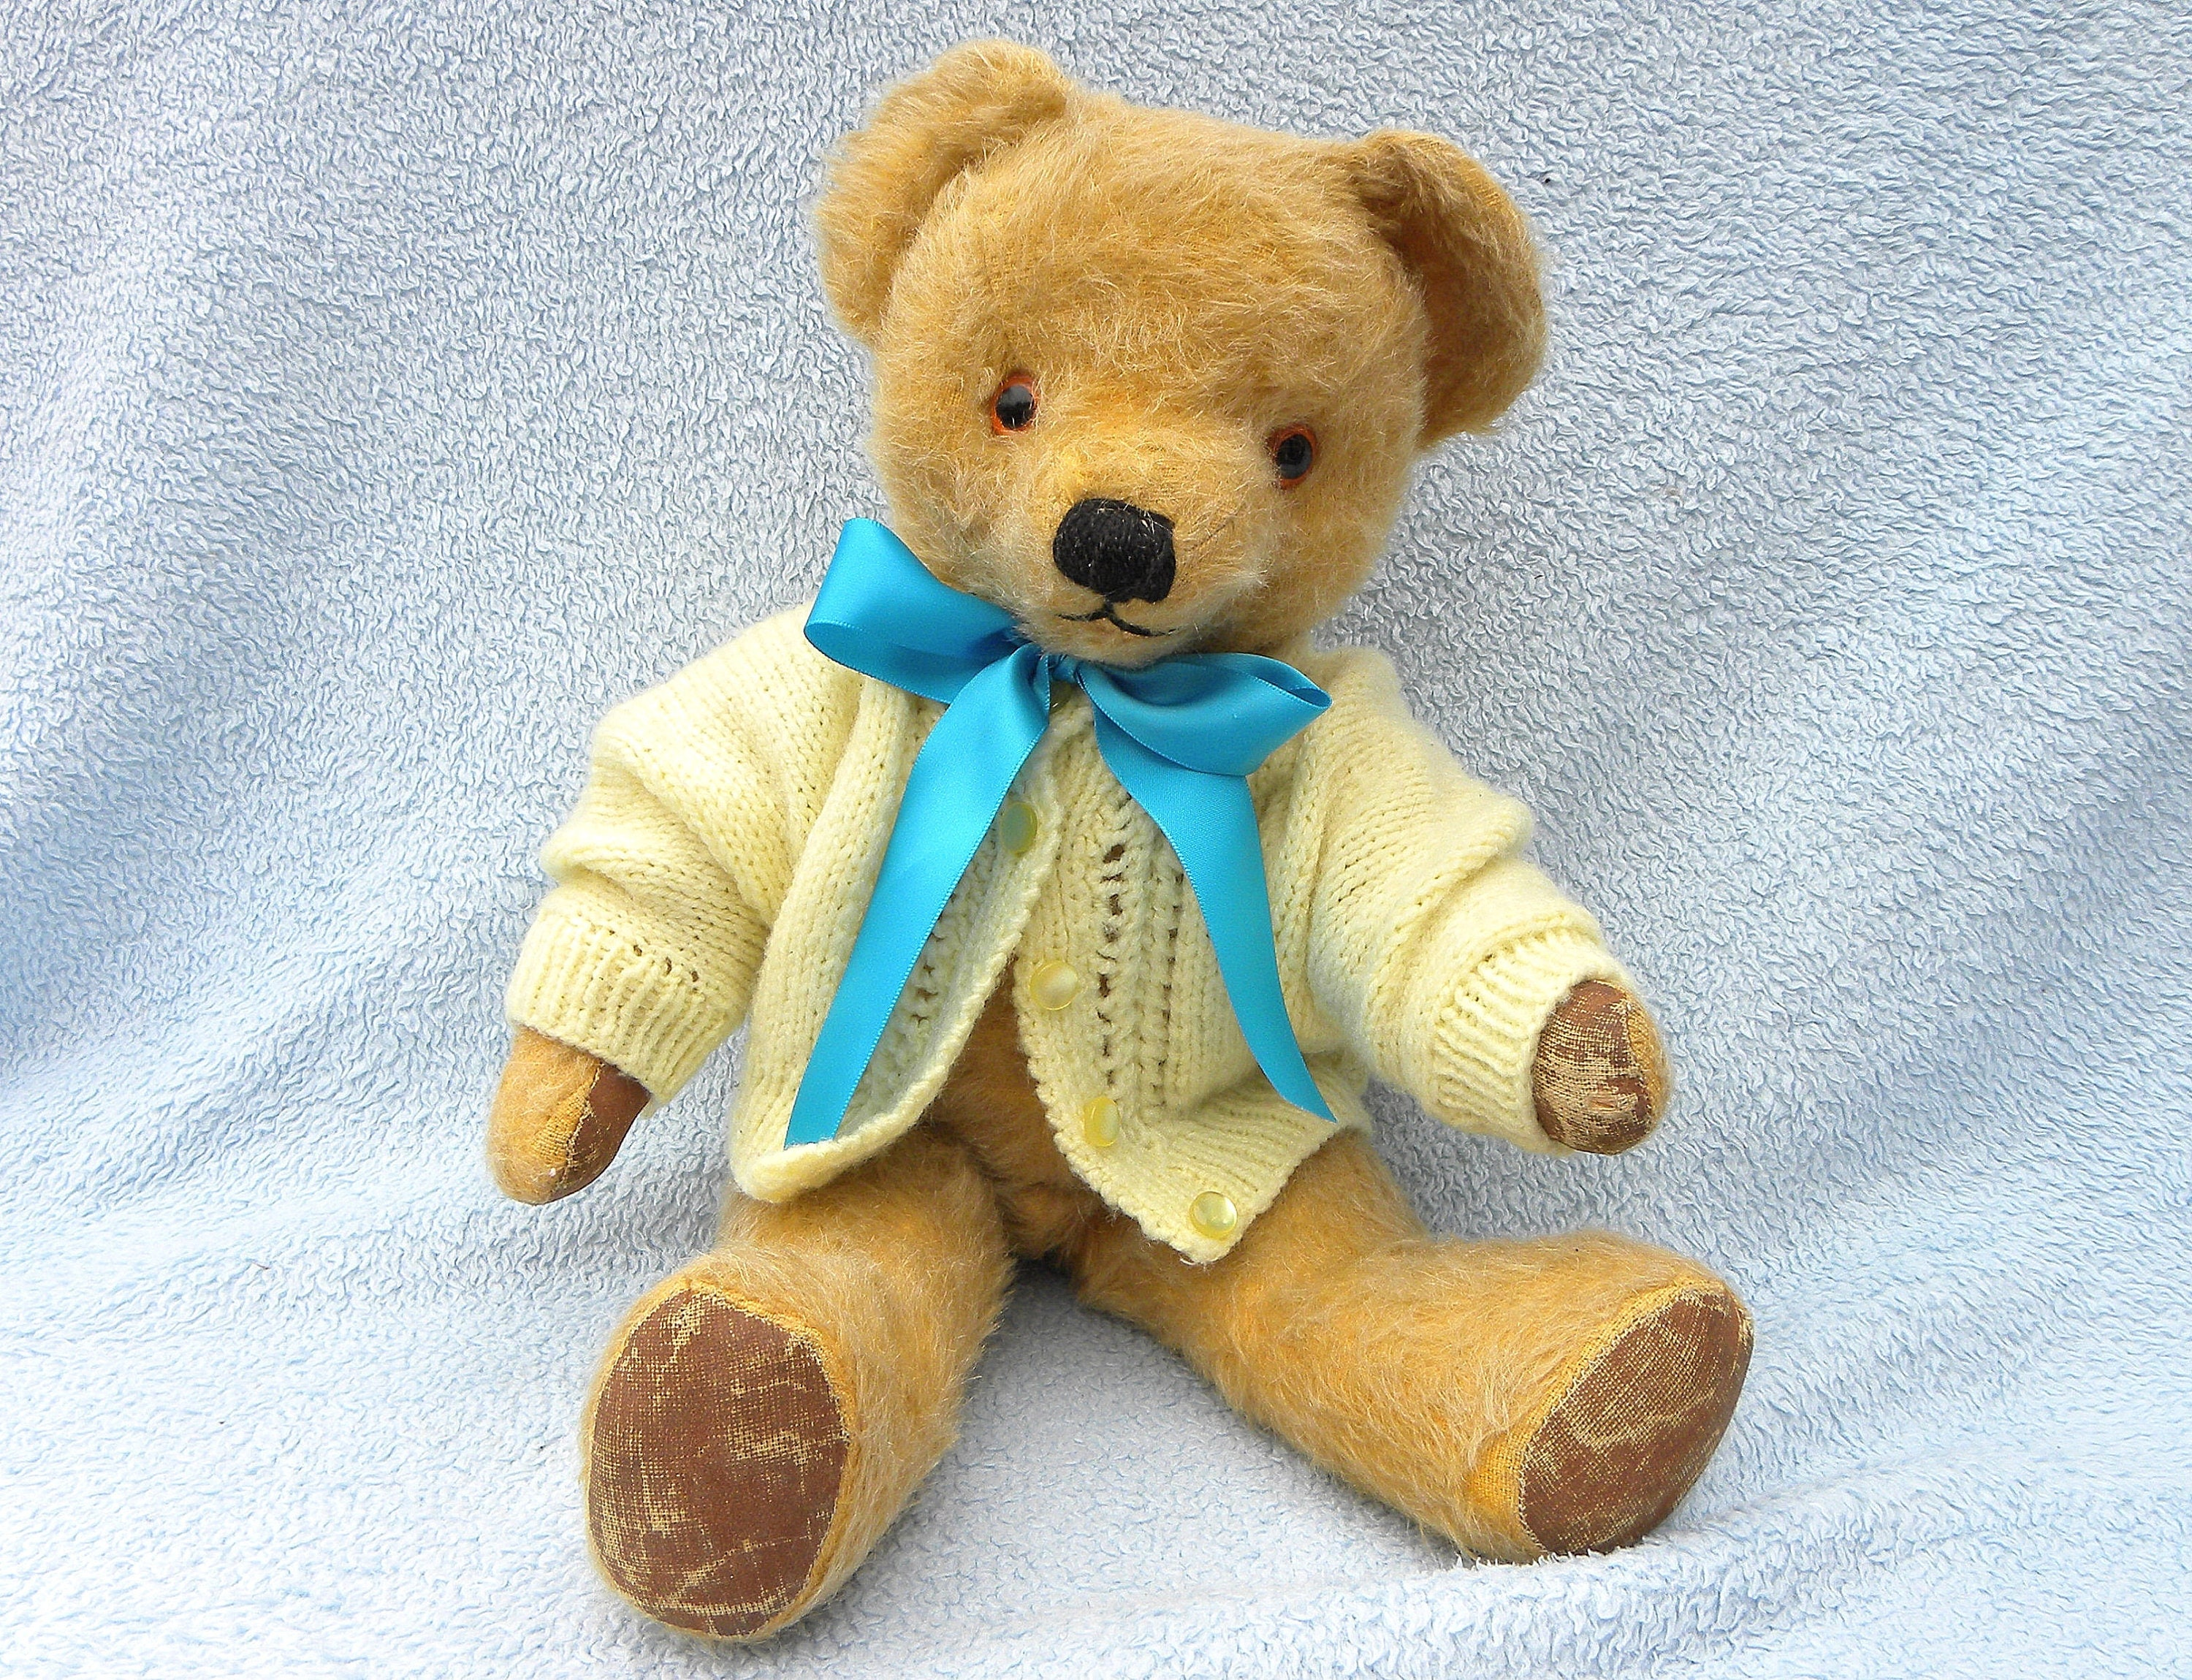 Vintage English 16 Mohair Bear Merrythought or Chad Valley Teddy from the 1960s